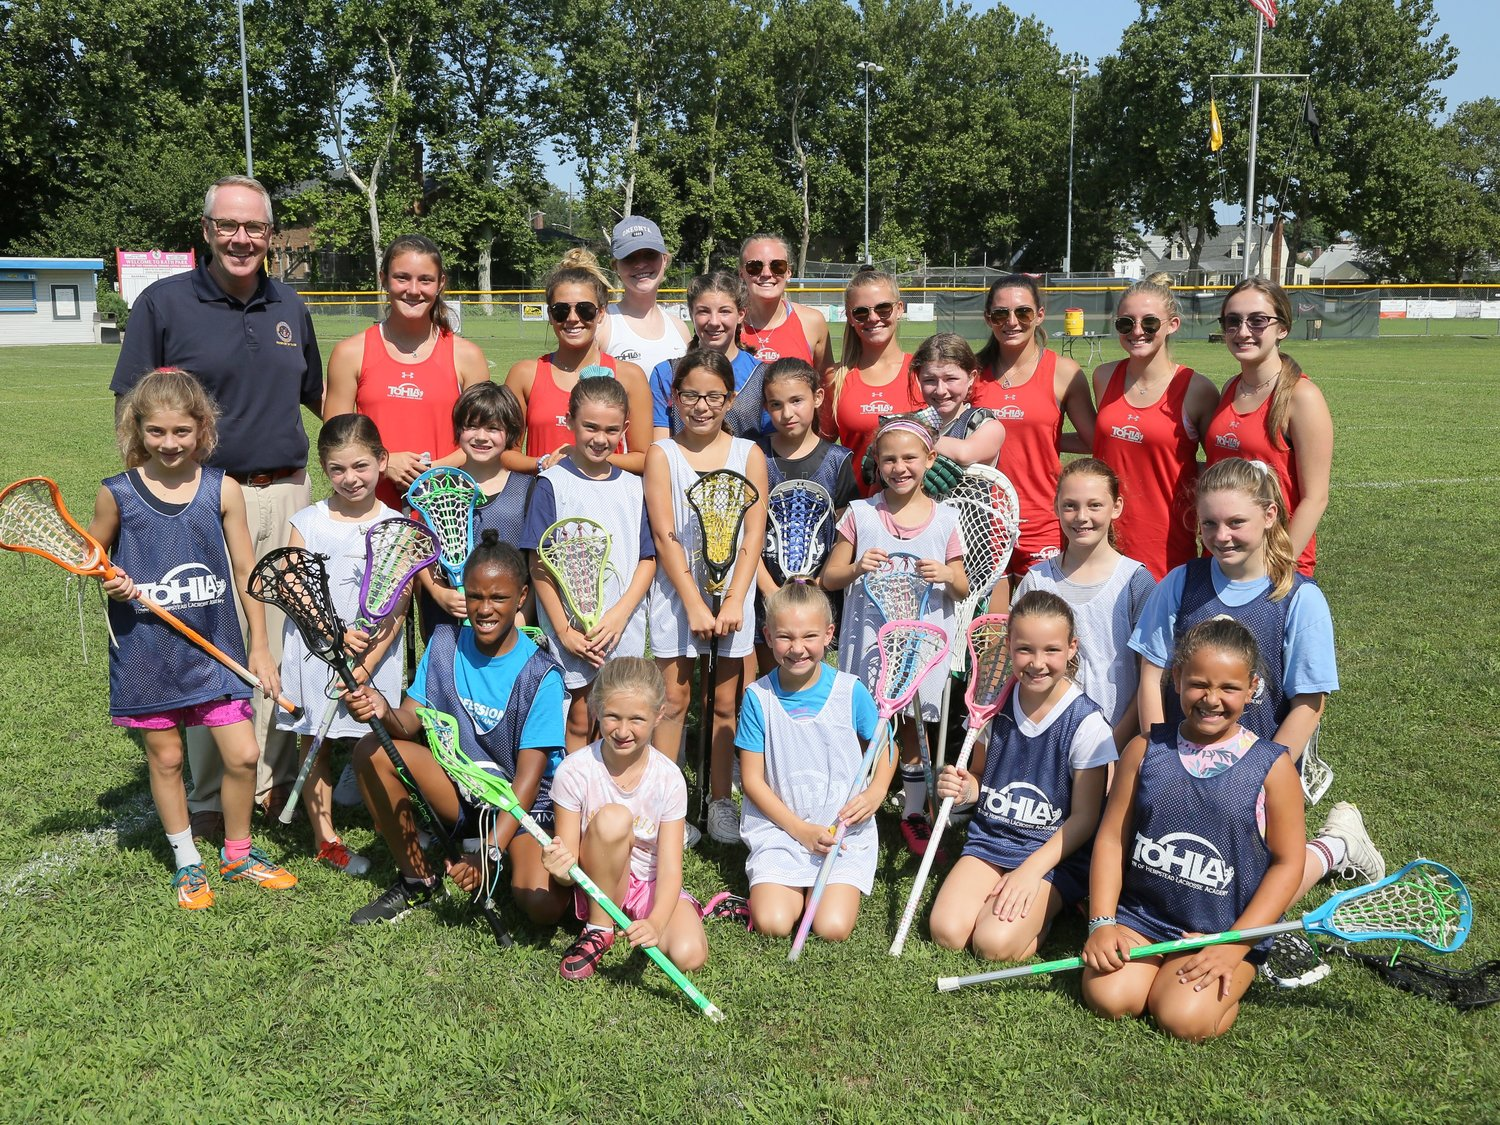 The Lacrosse Academy offers clinics and training for both boys' and girls' teams.